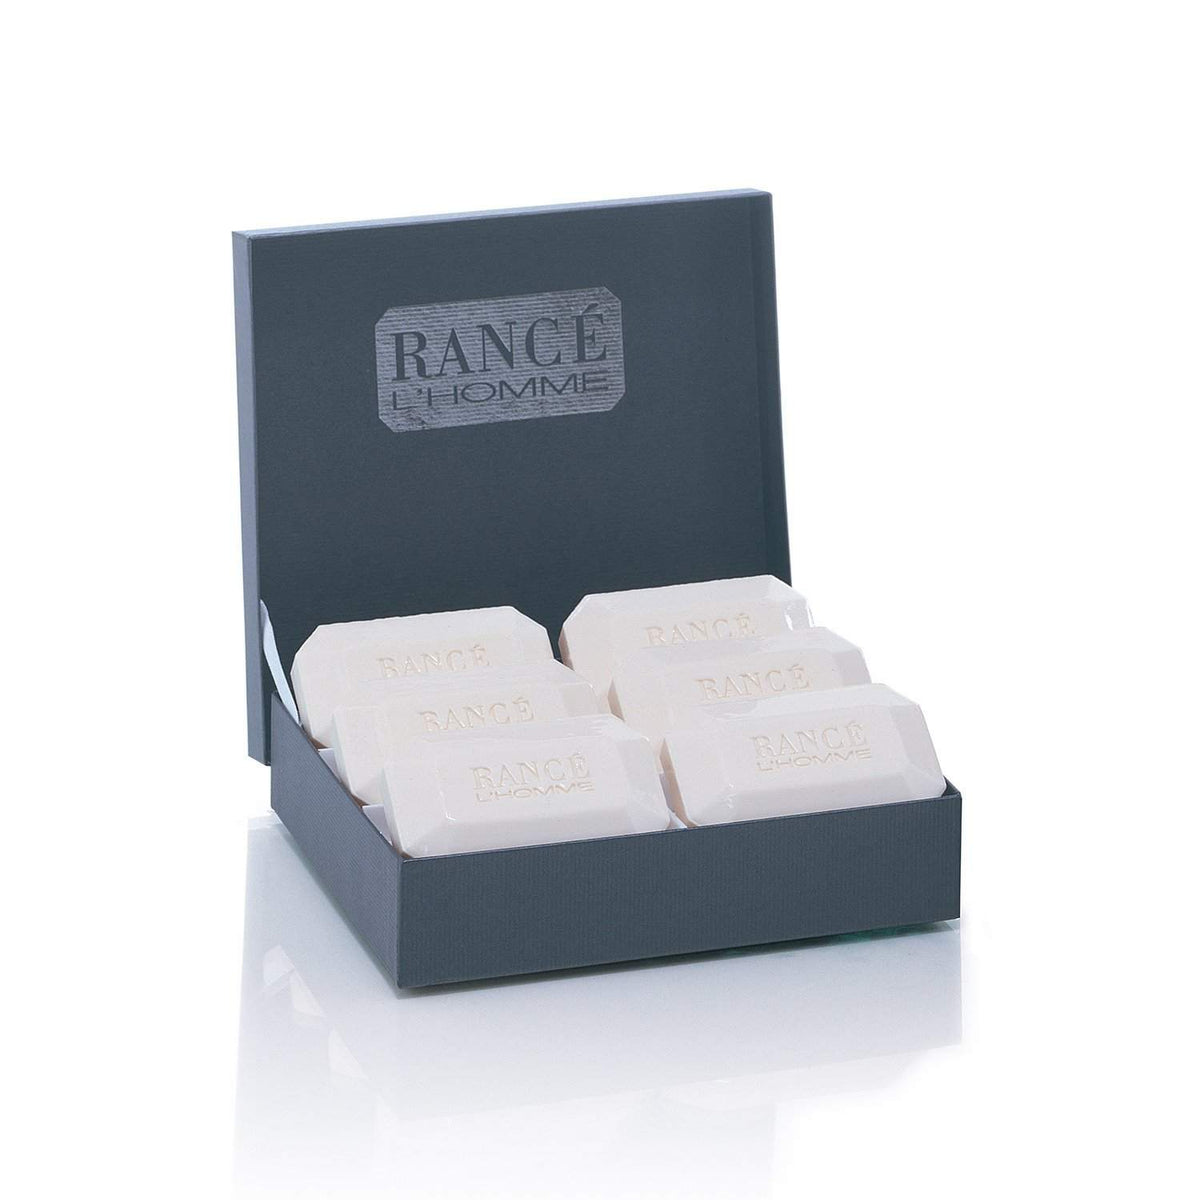 Rance Soaps L'Homme Soap Box-Rance Soaps-Oak Manor Fragrances